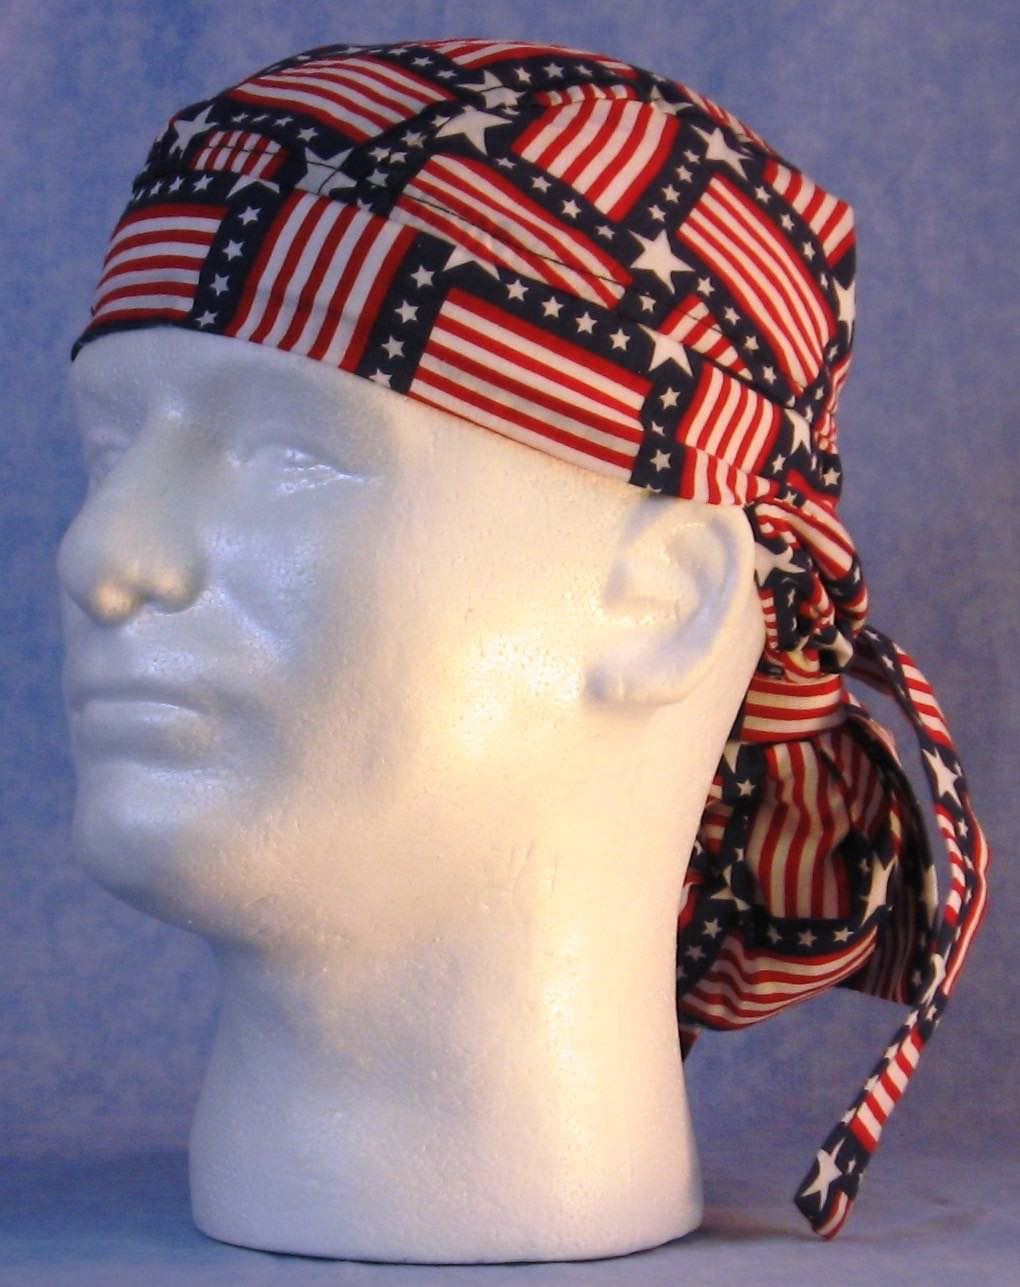 Hair Bag Do Rag in Square Flags - Adult 1XL-3XL